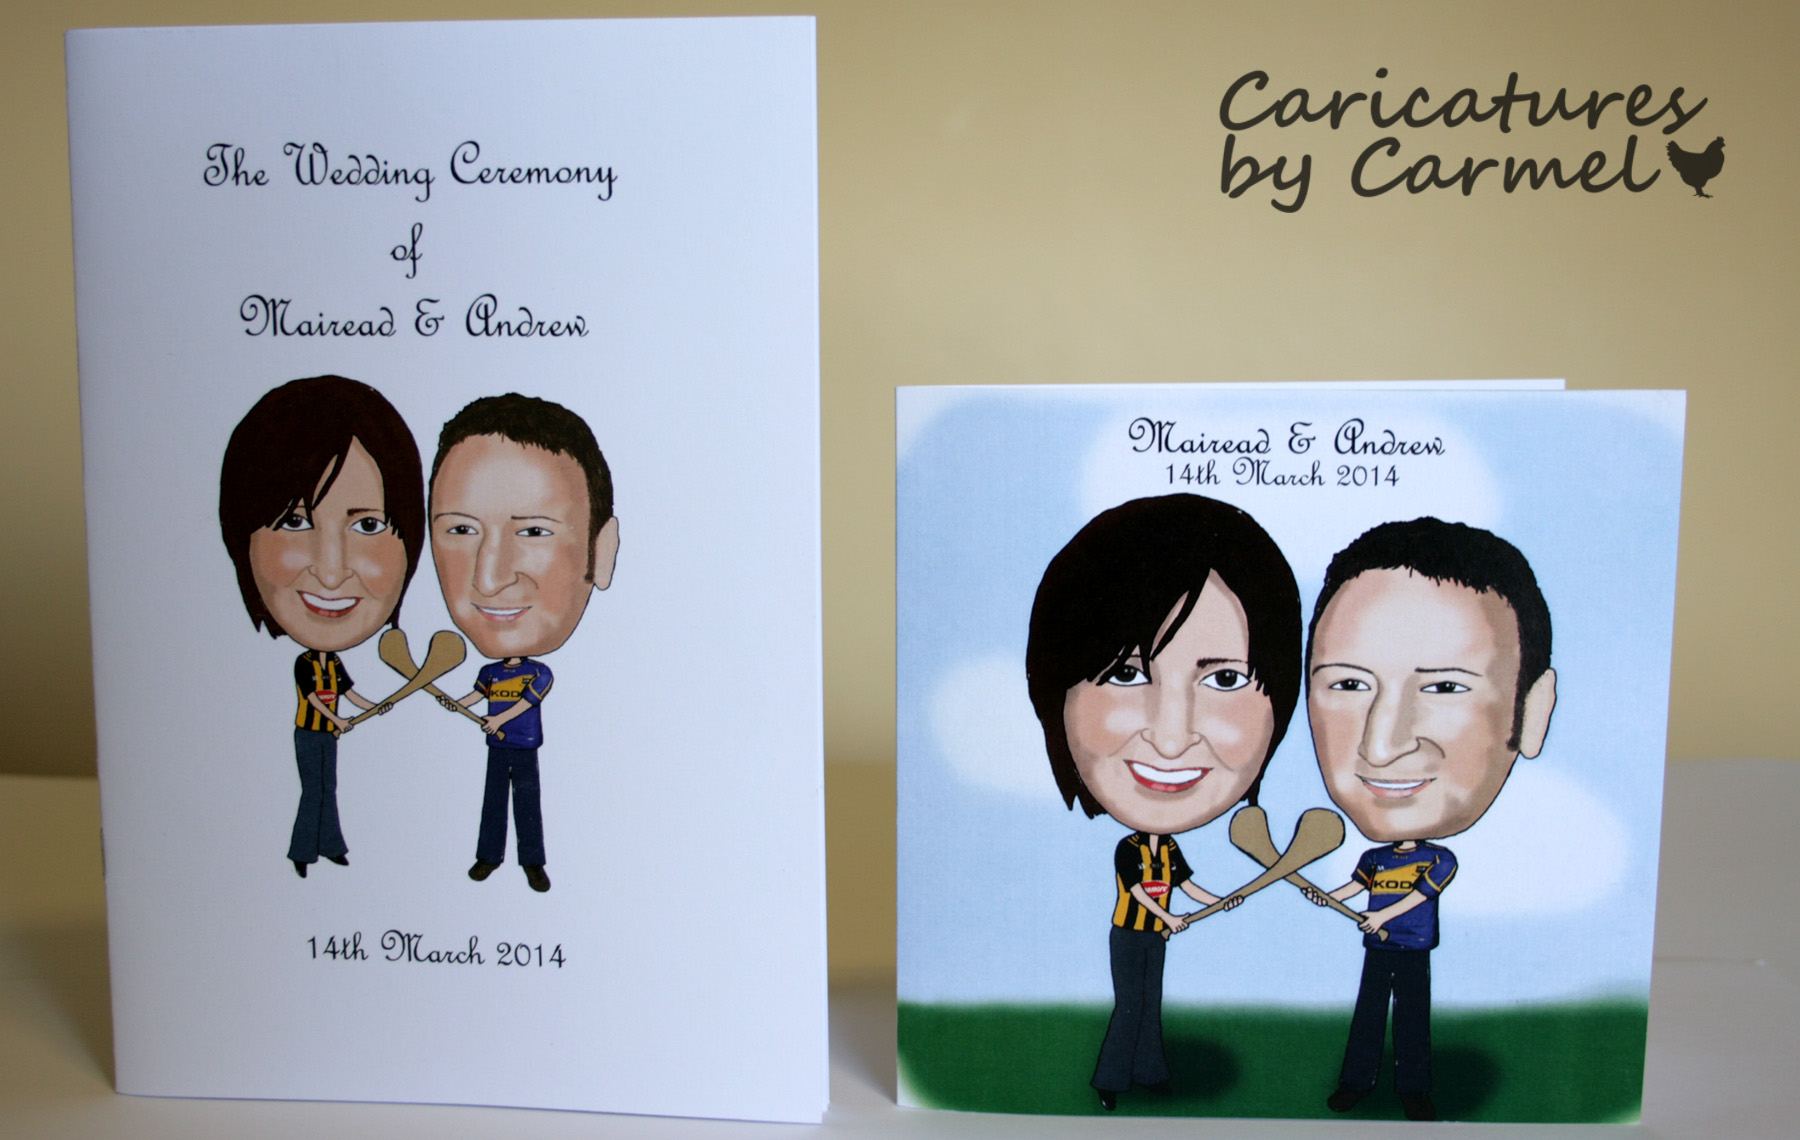 Caricature Wedding Invitation and Mass Booklet created by Caricatures by Carmel for Mairead & Andrew